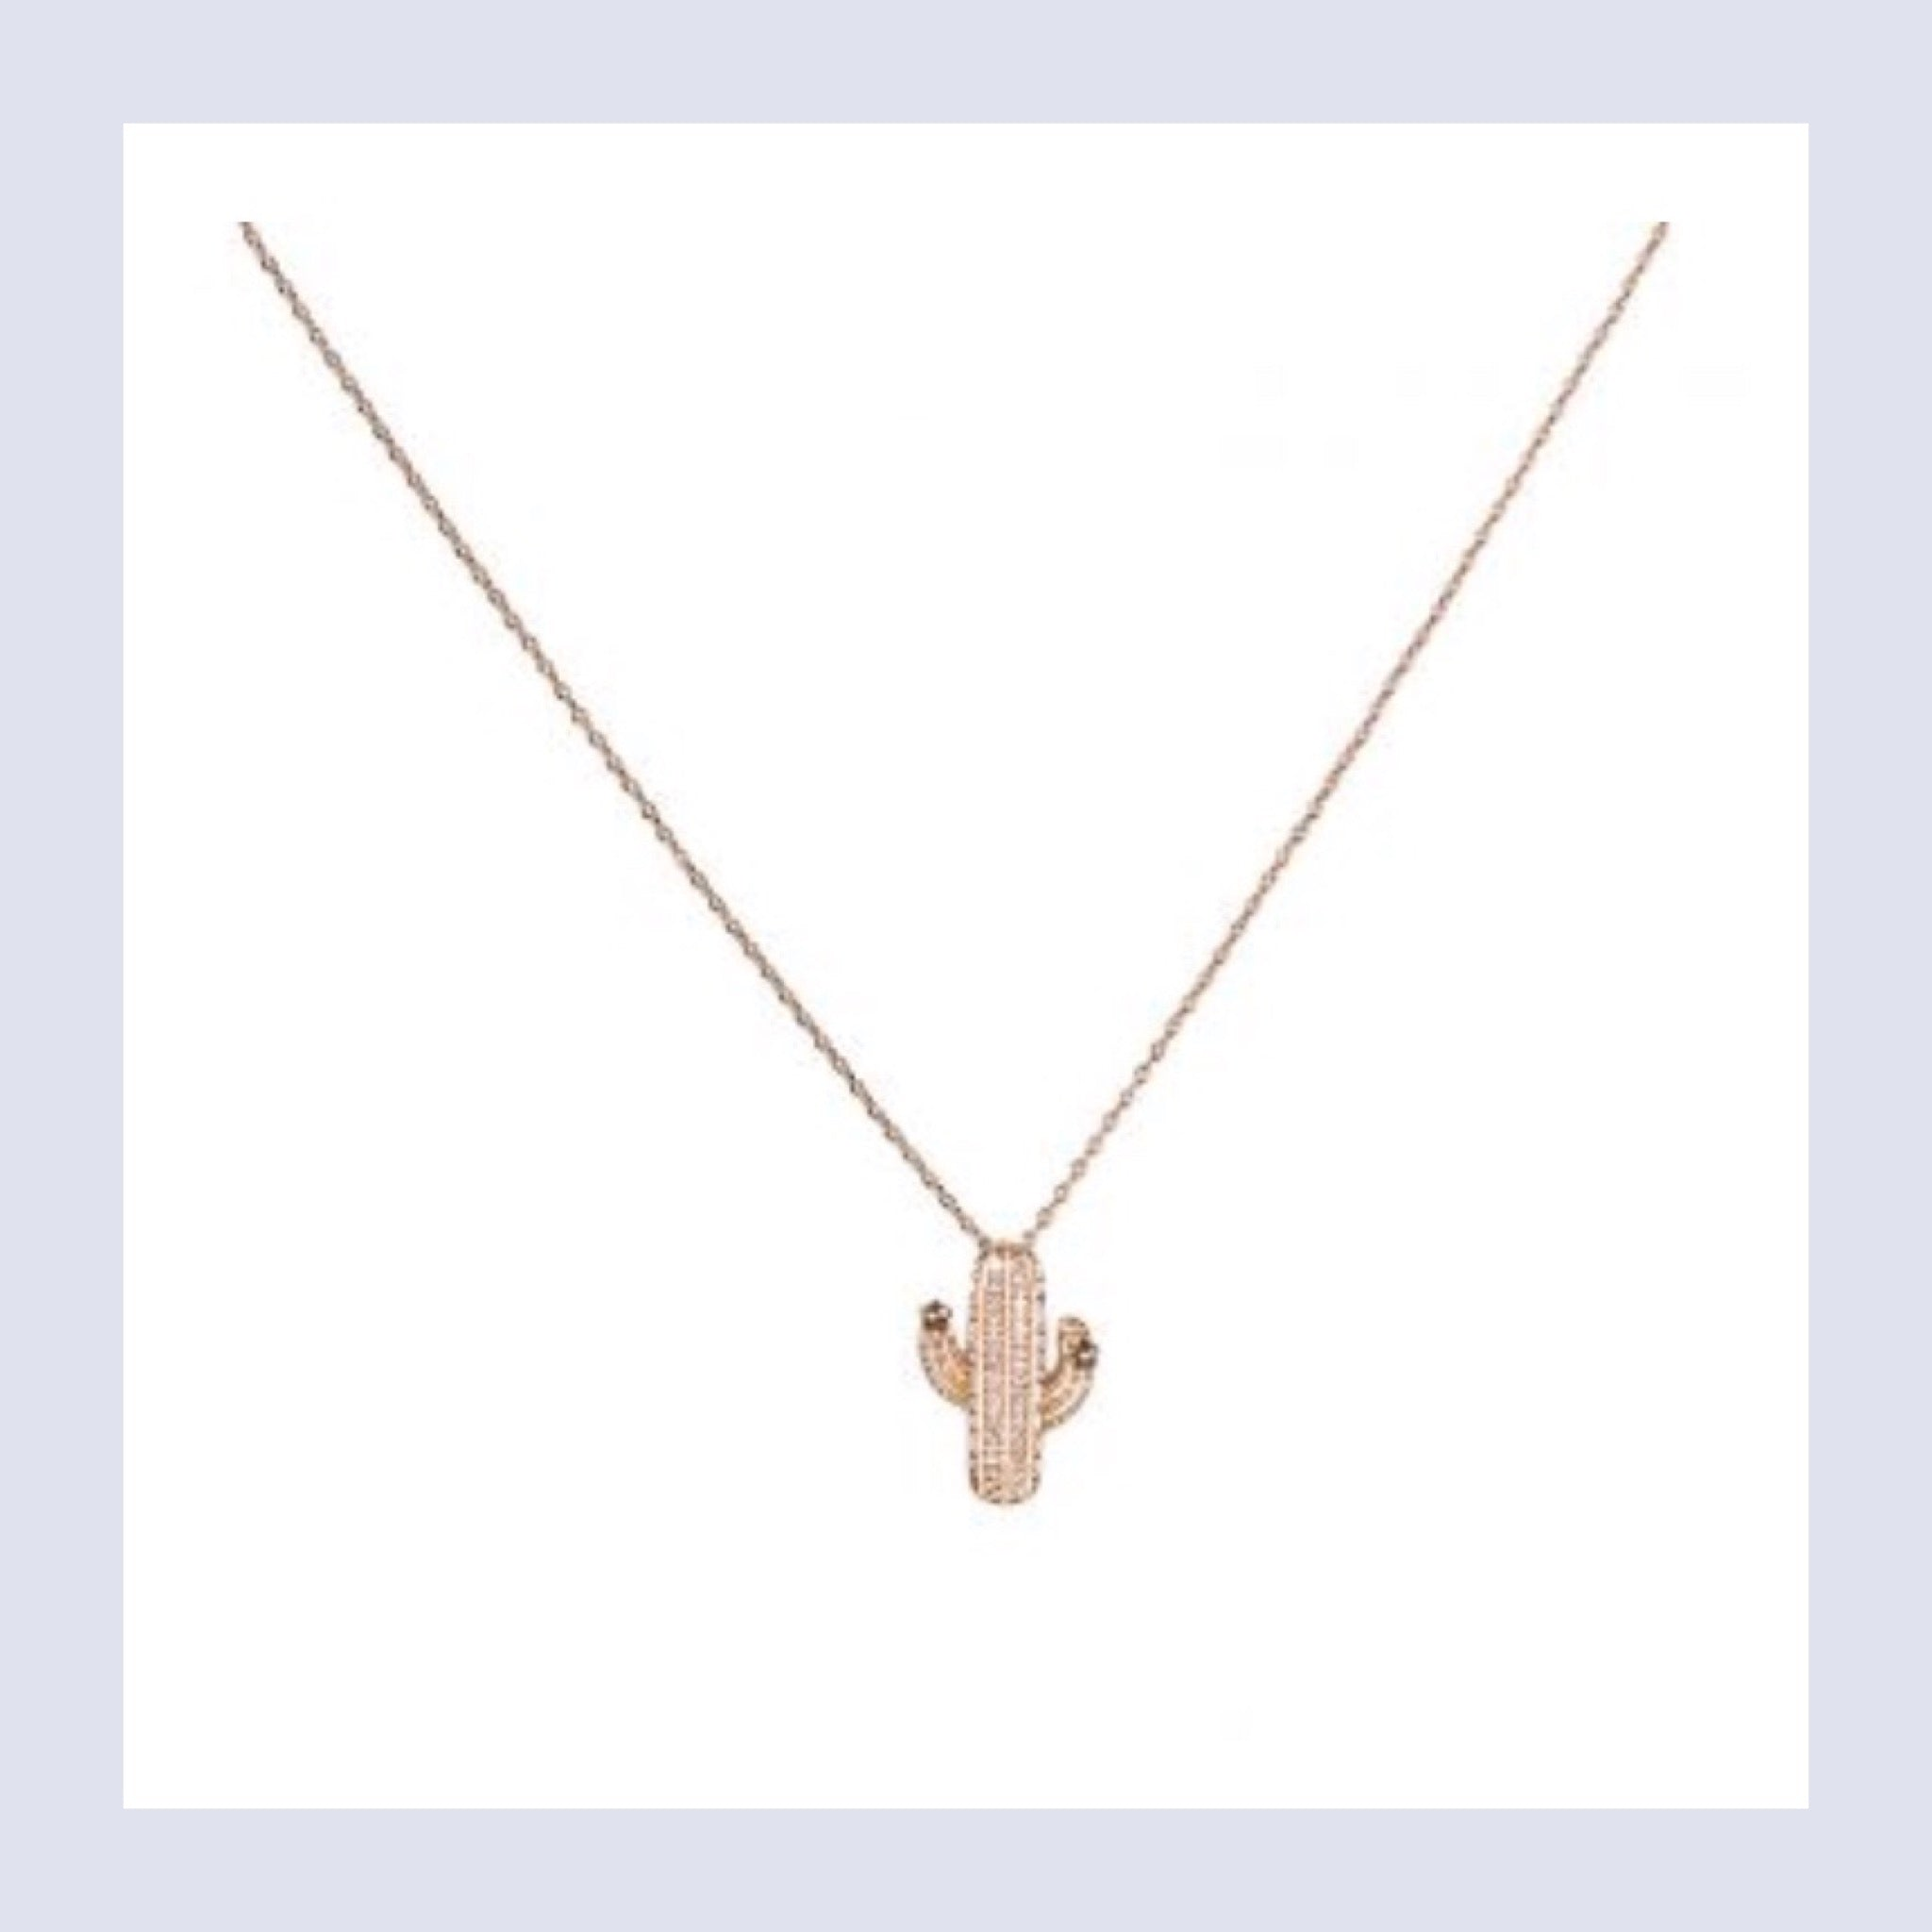 Tropical luxe cactus necklace - gold